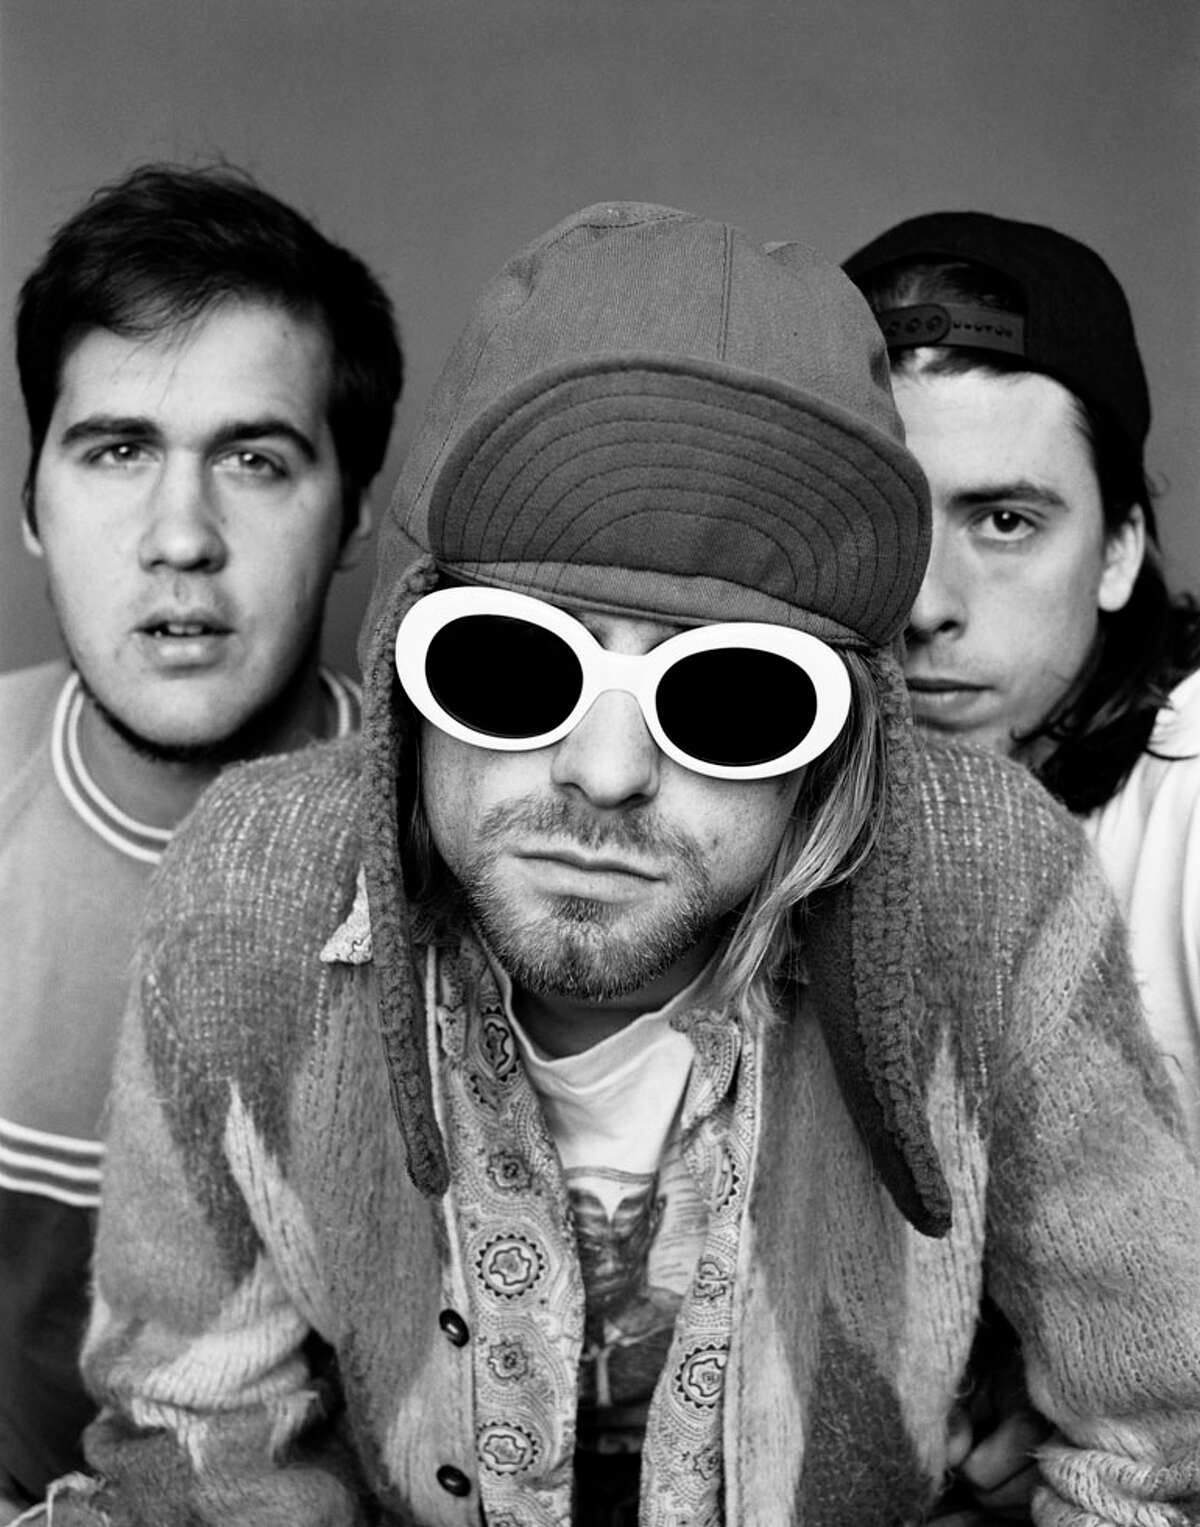 Kurt Cobain and Nirvana bandmates Dave Grohl and bassist Krist Novoselic posed for this shot for a London magazine in November 1993.